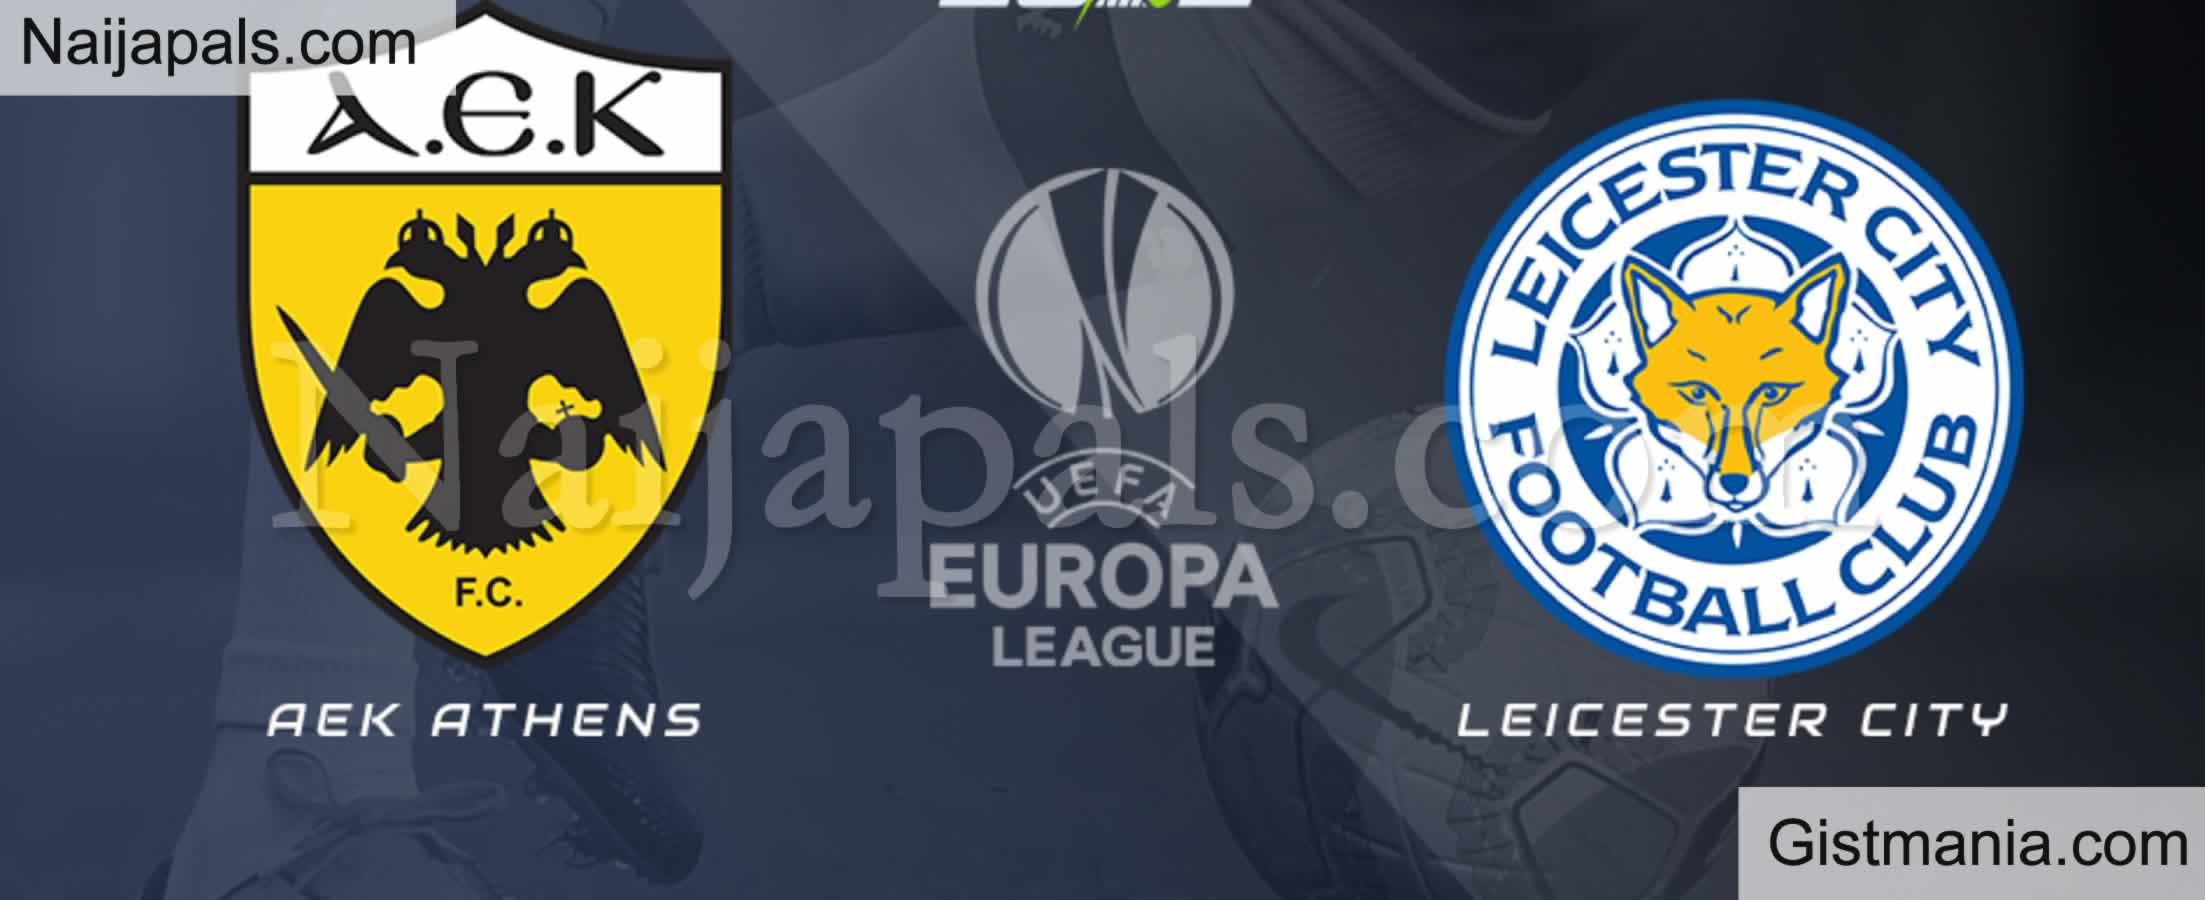 <img alt='.' class='lazyload' data-src='https://img.gistmania.com/emot/soccer.gif' /> <b>AEK Athens v Leicester City : UEFA Europa League Match, Team News, Goal Scorers and Stats</b>